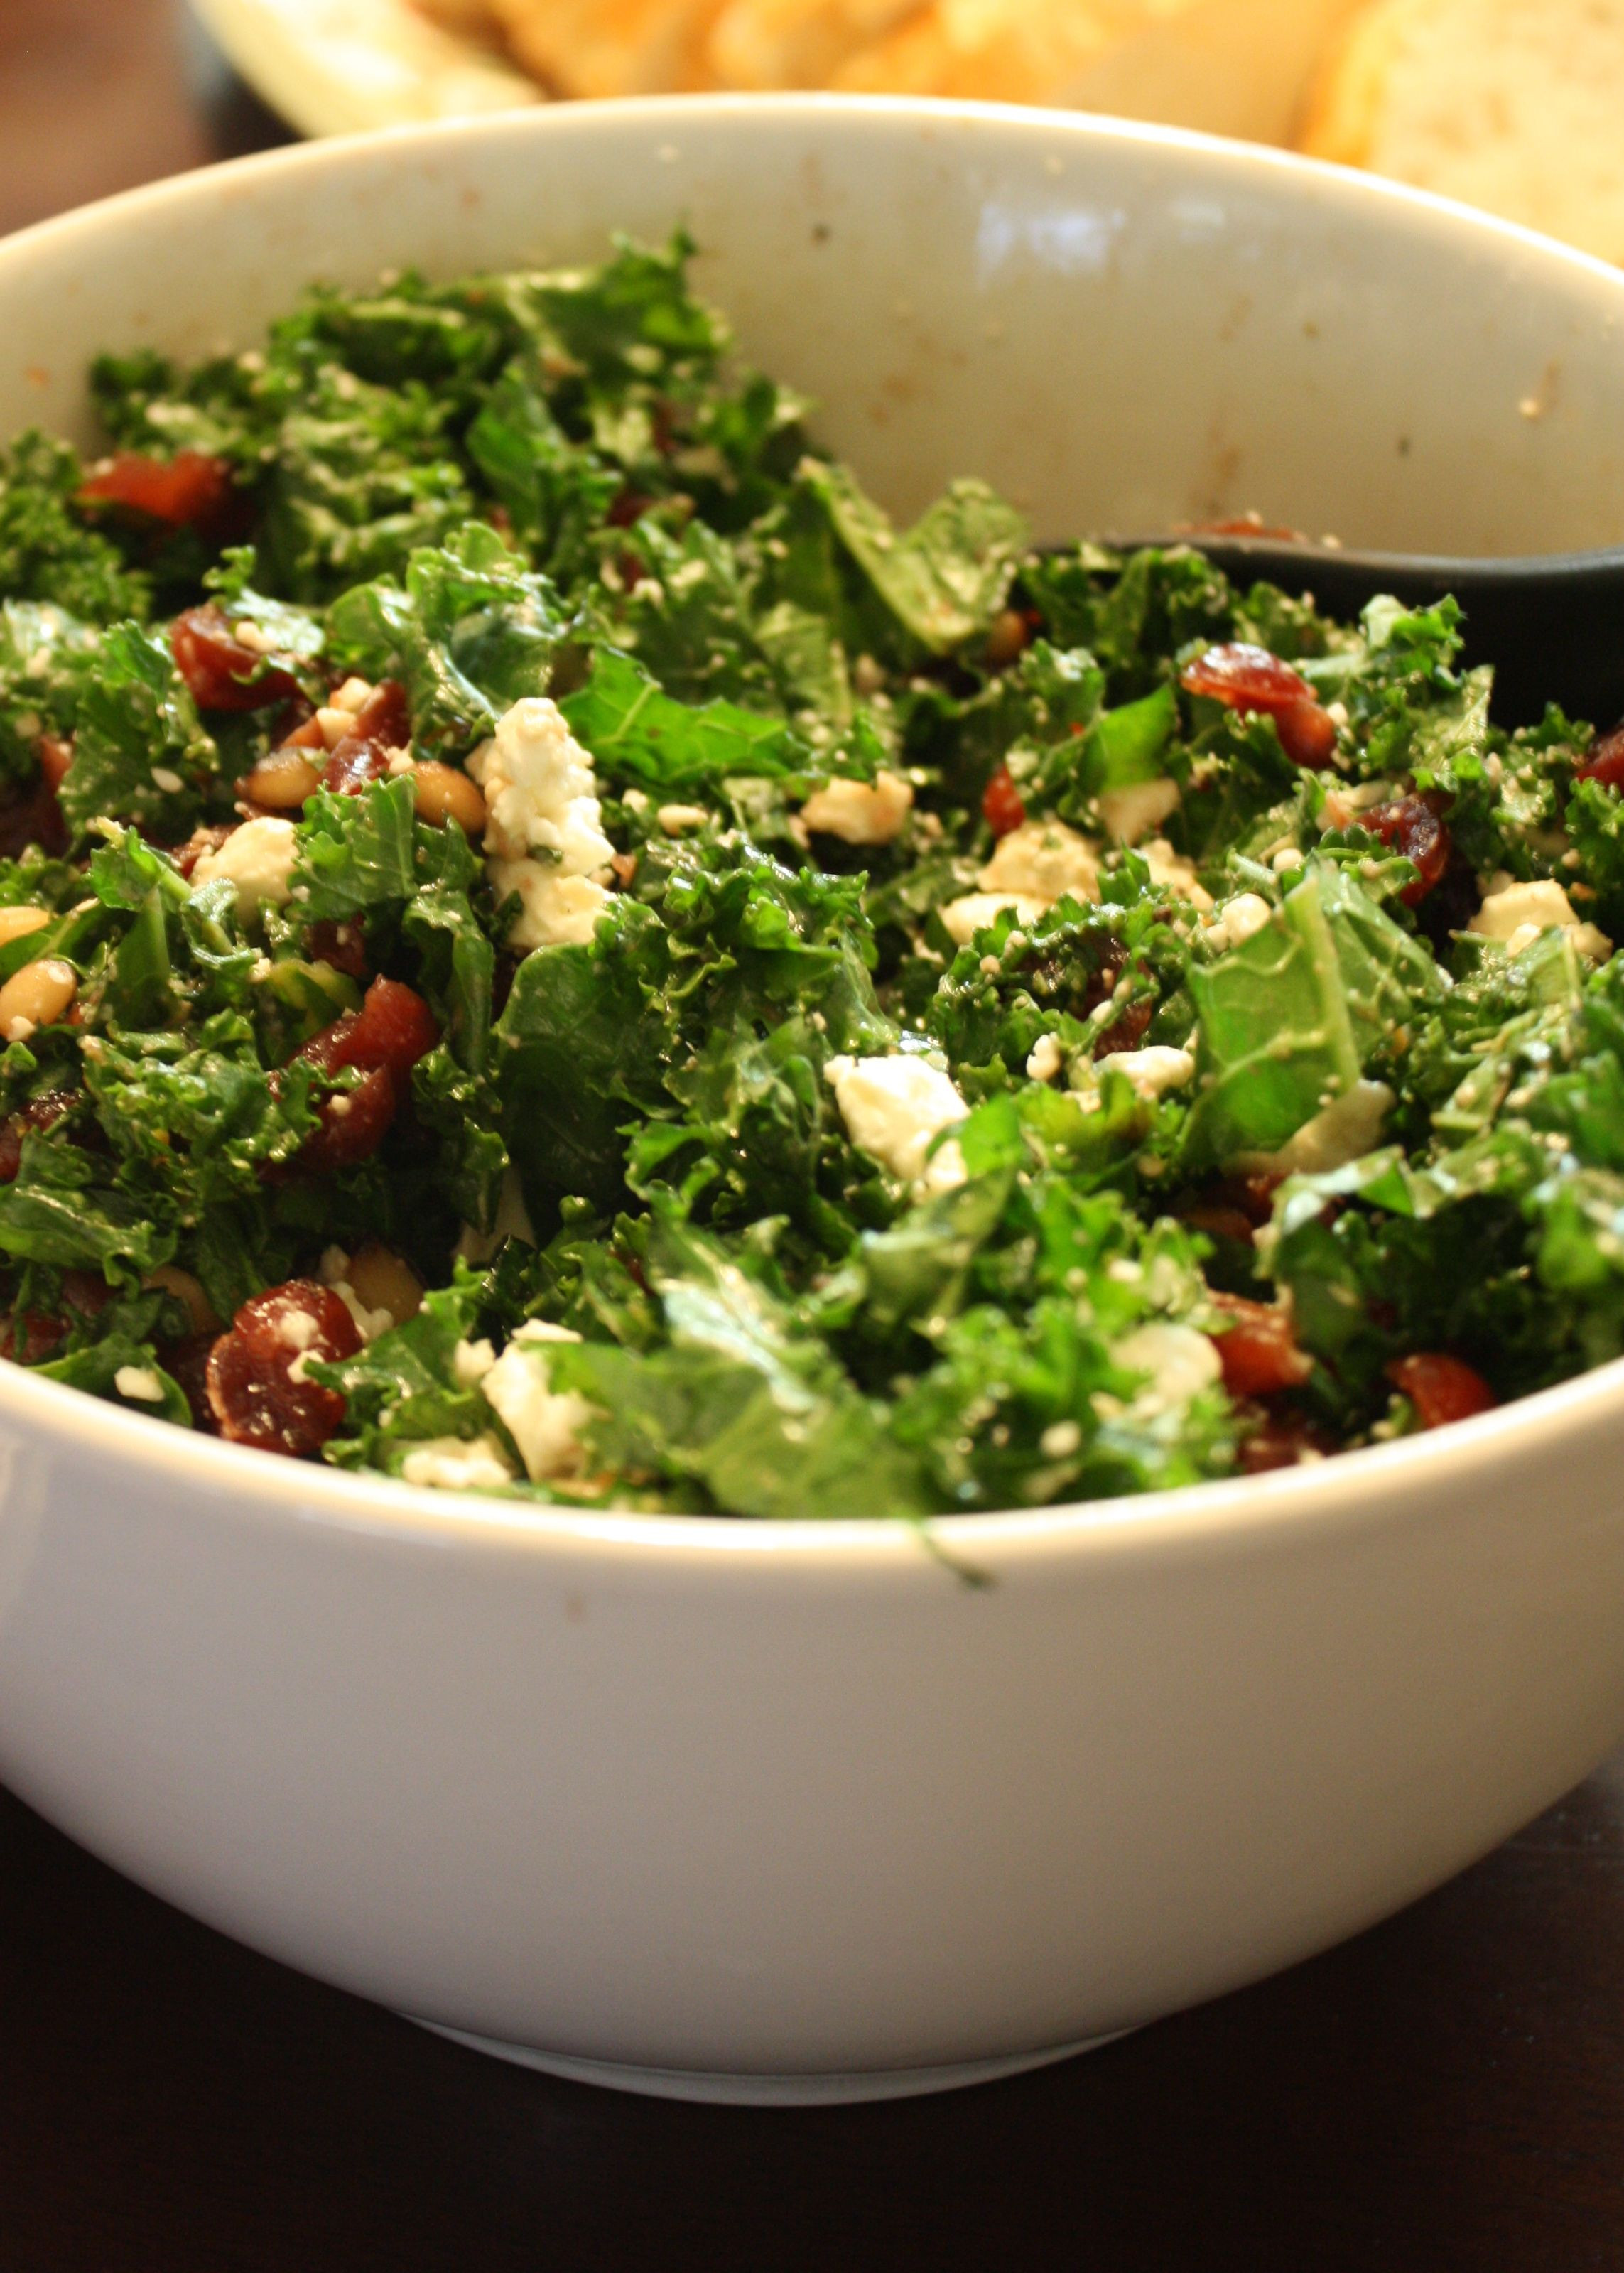 Healthy Kale Recipes  Kale Salad with cranberries pine nuts and feta